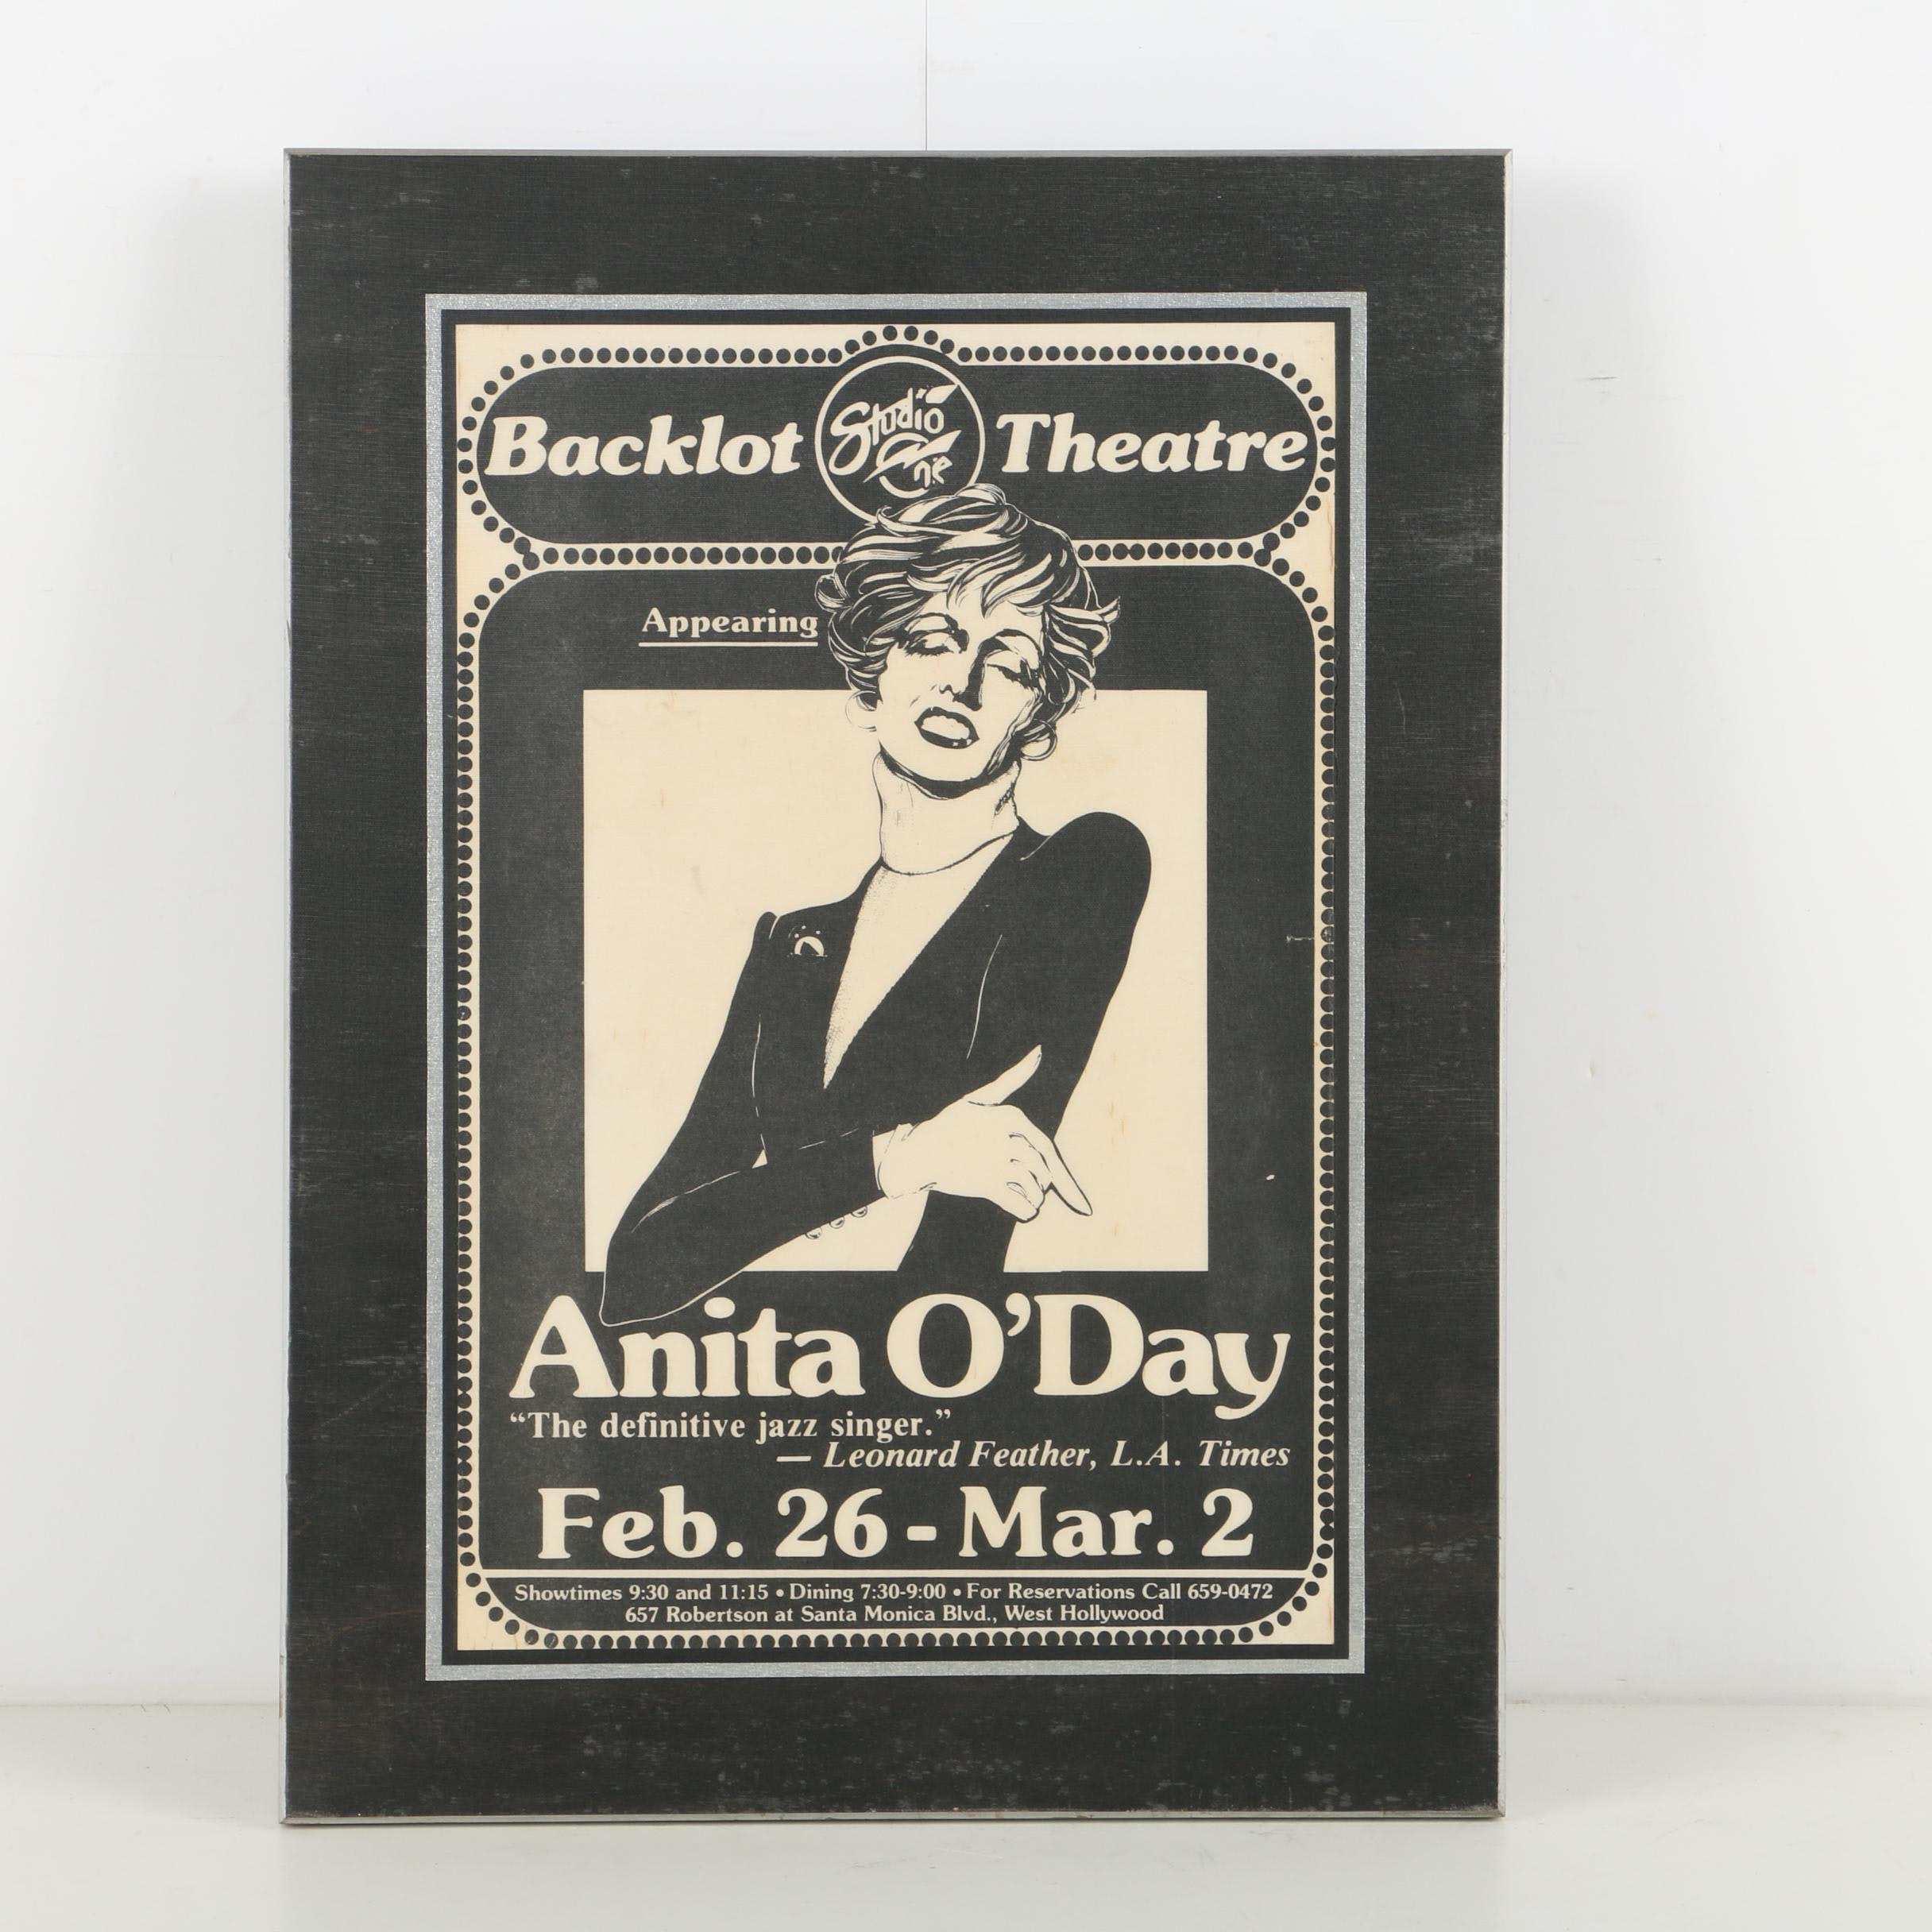 Backlot Theatre Poster for Anita O'Day Performance